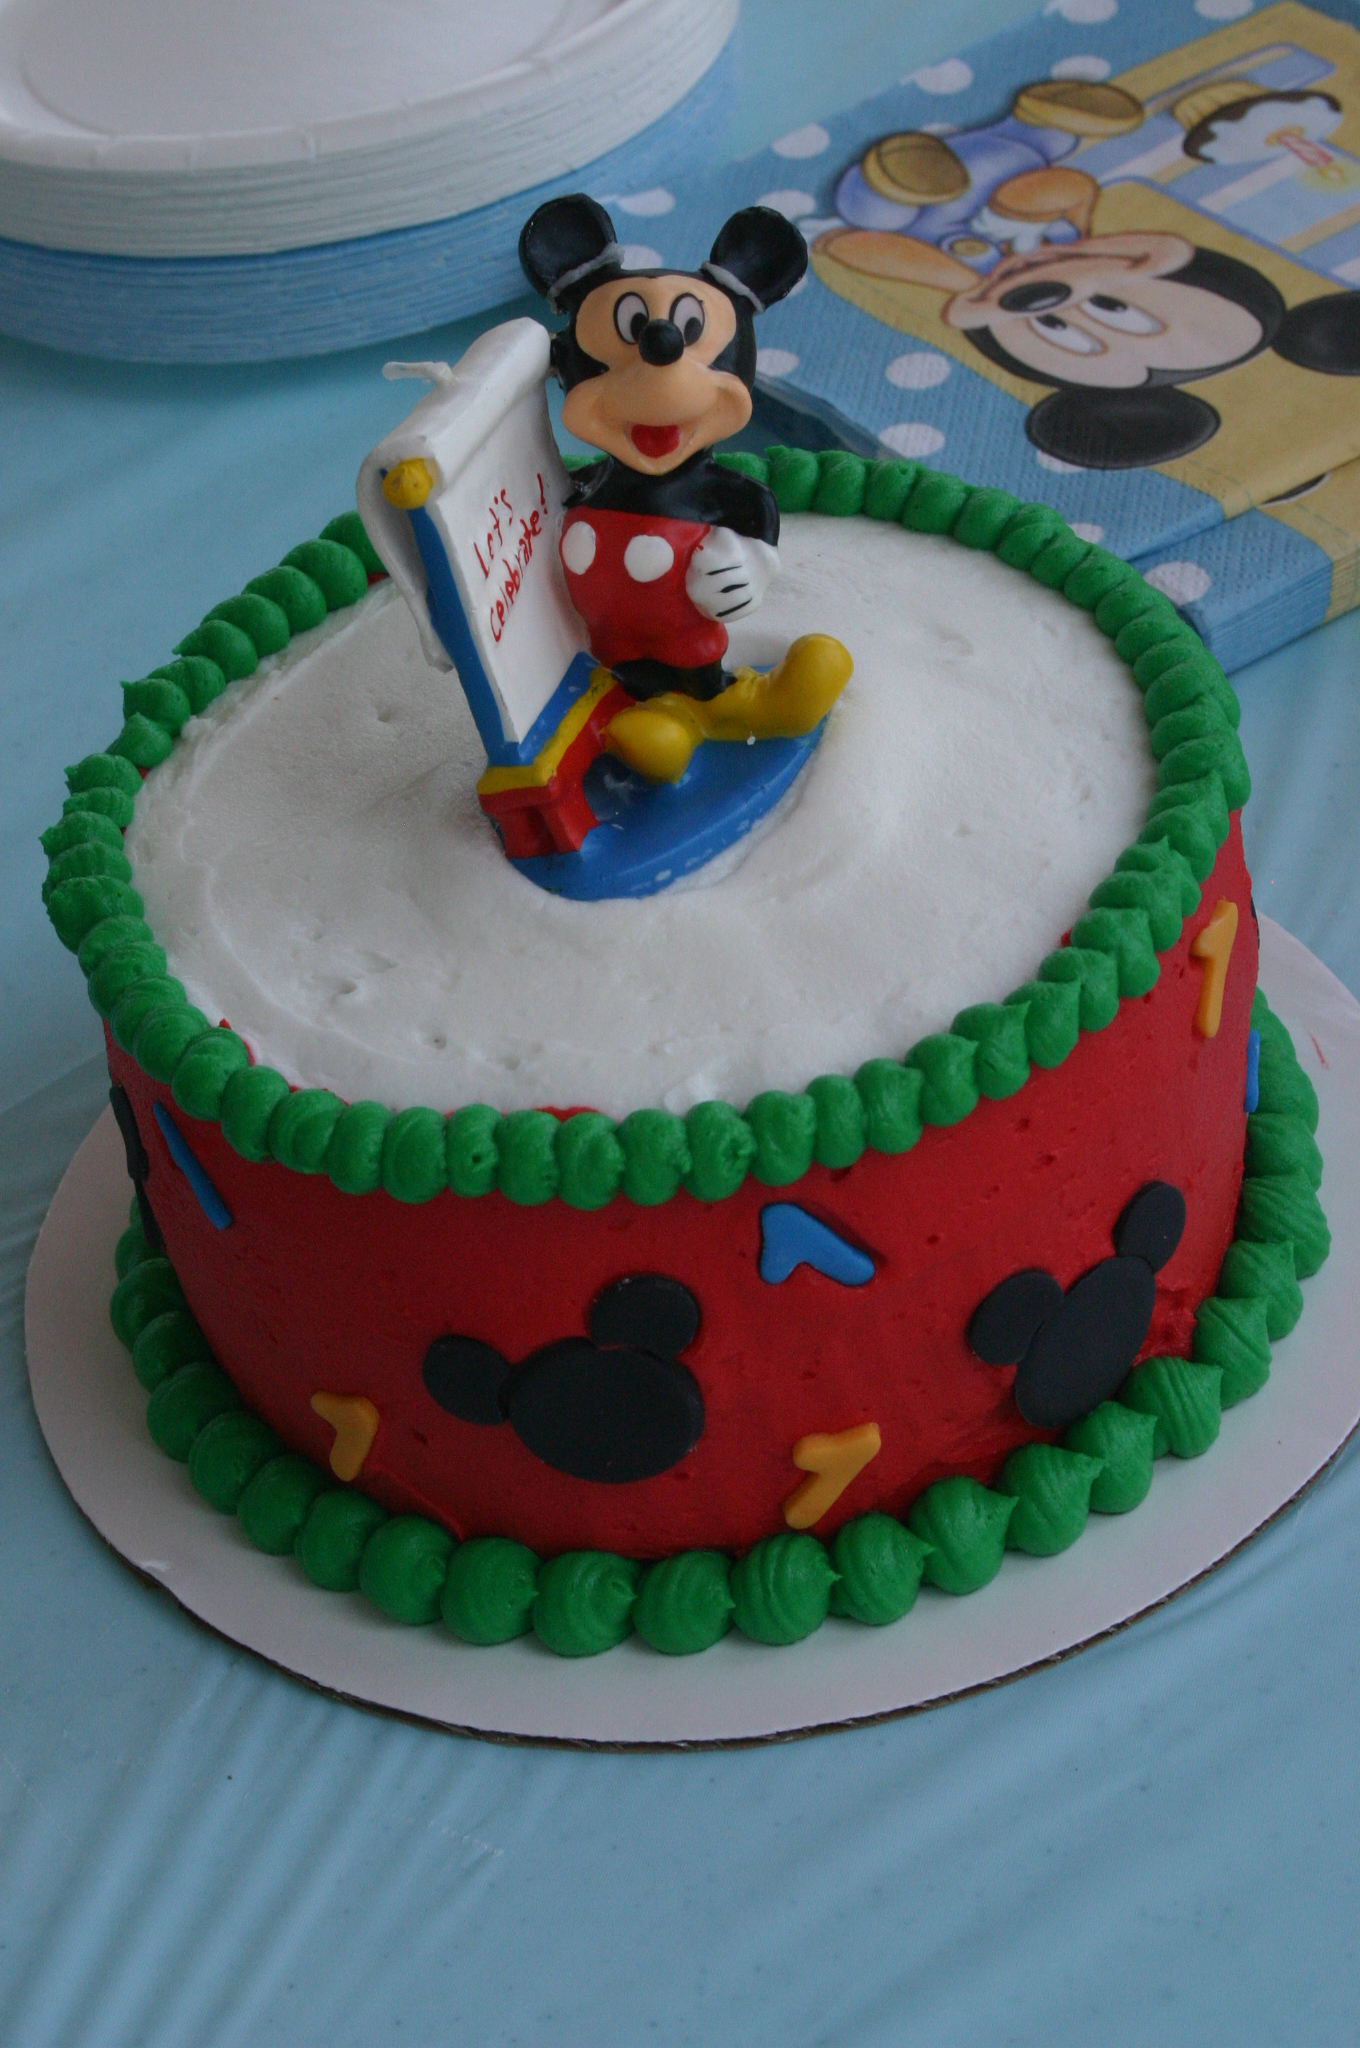 Mickey mouse 1st birthday smash cake in red and green this cake was